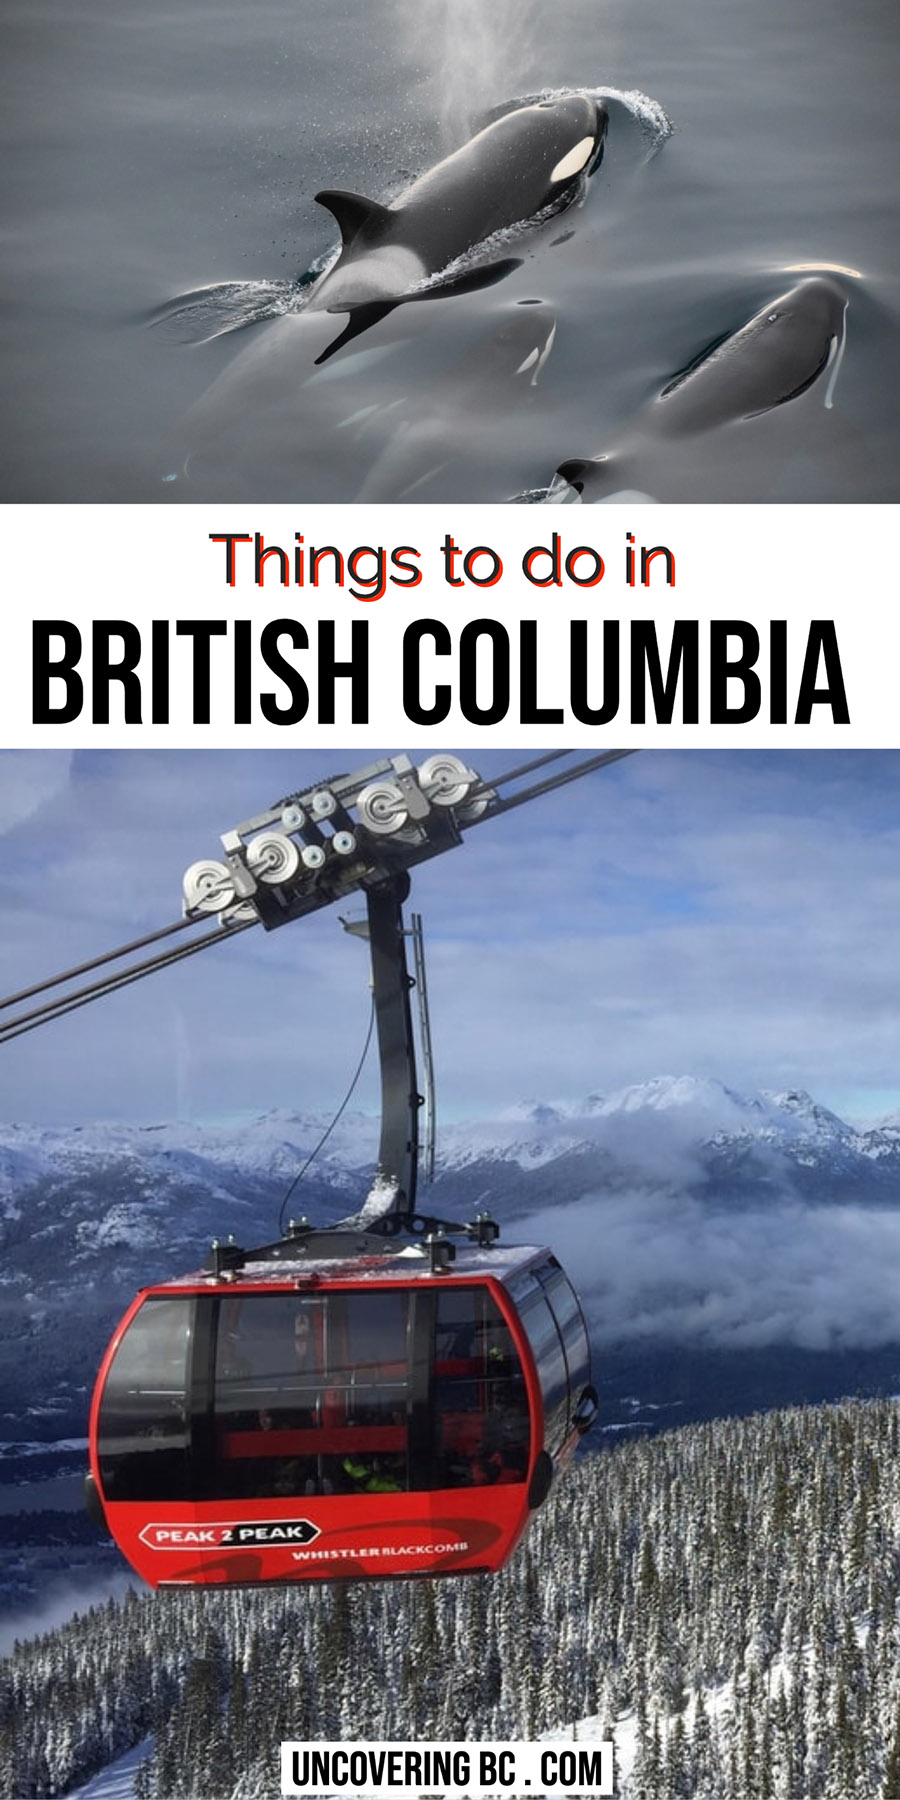 Things to do in BC